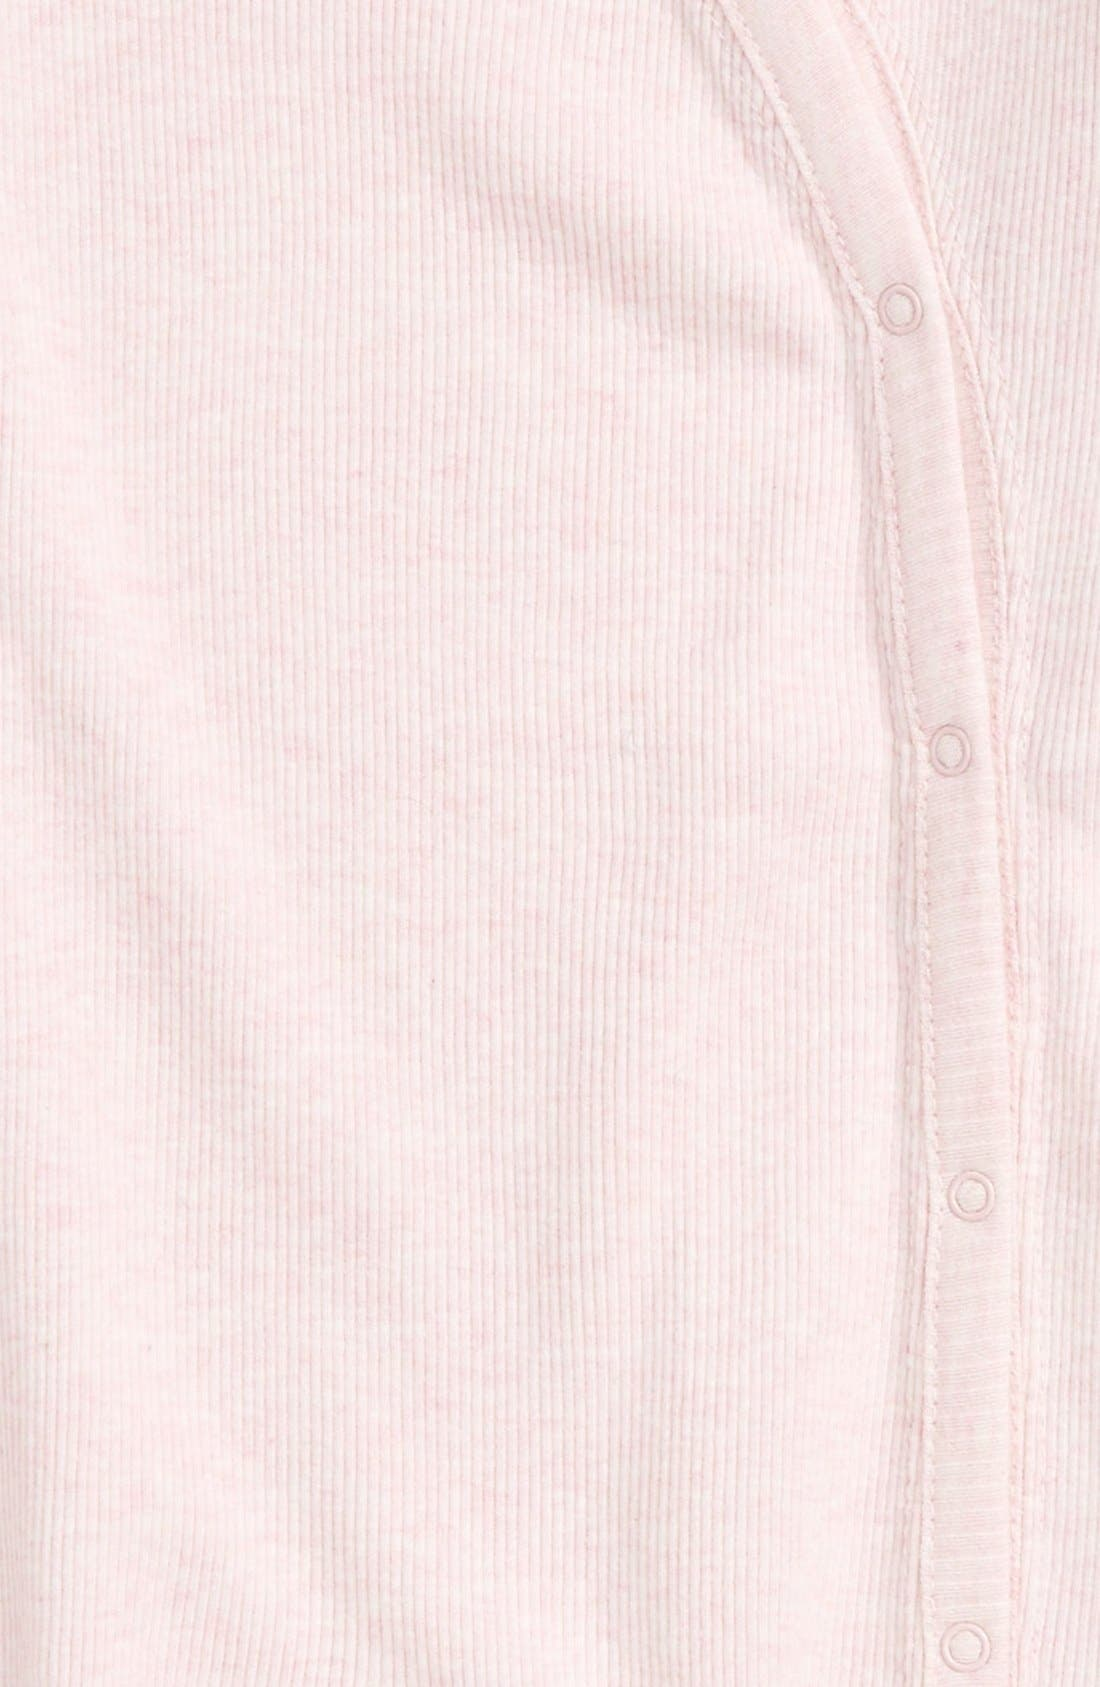 NORDSTROM BABY,                             Rib Knit Footie,                             Alternate thumbnail 2, color,                             PINK BABY HEATHER